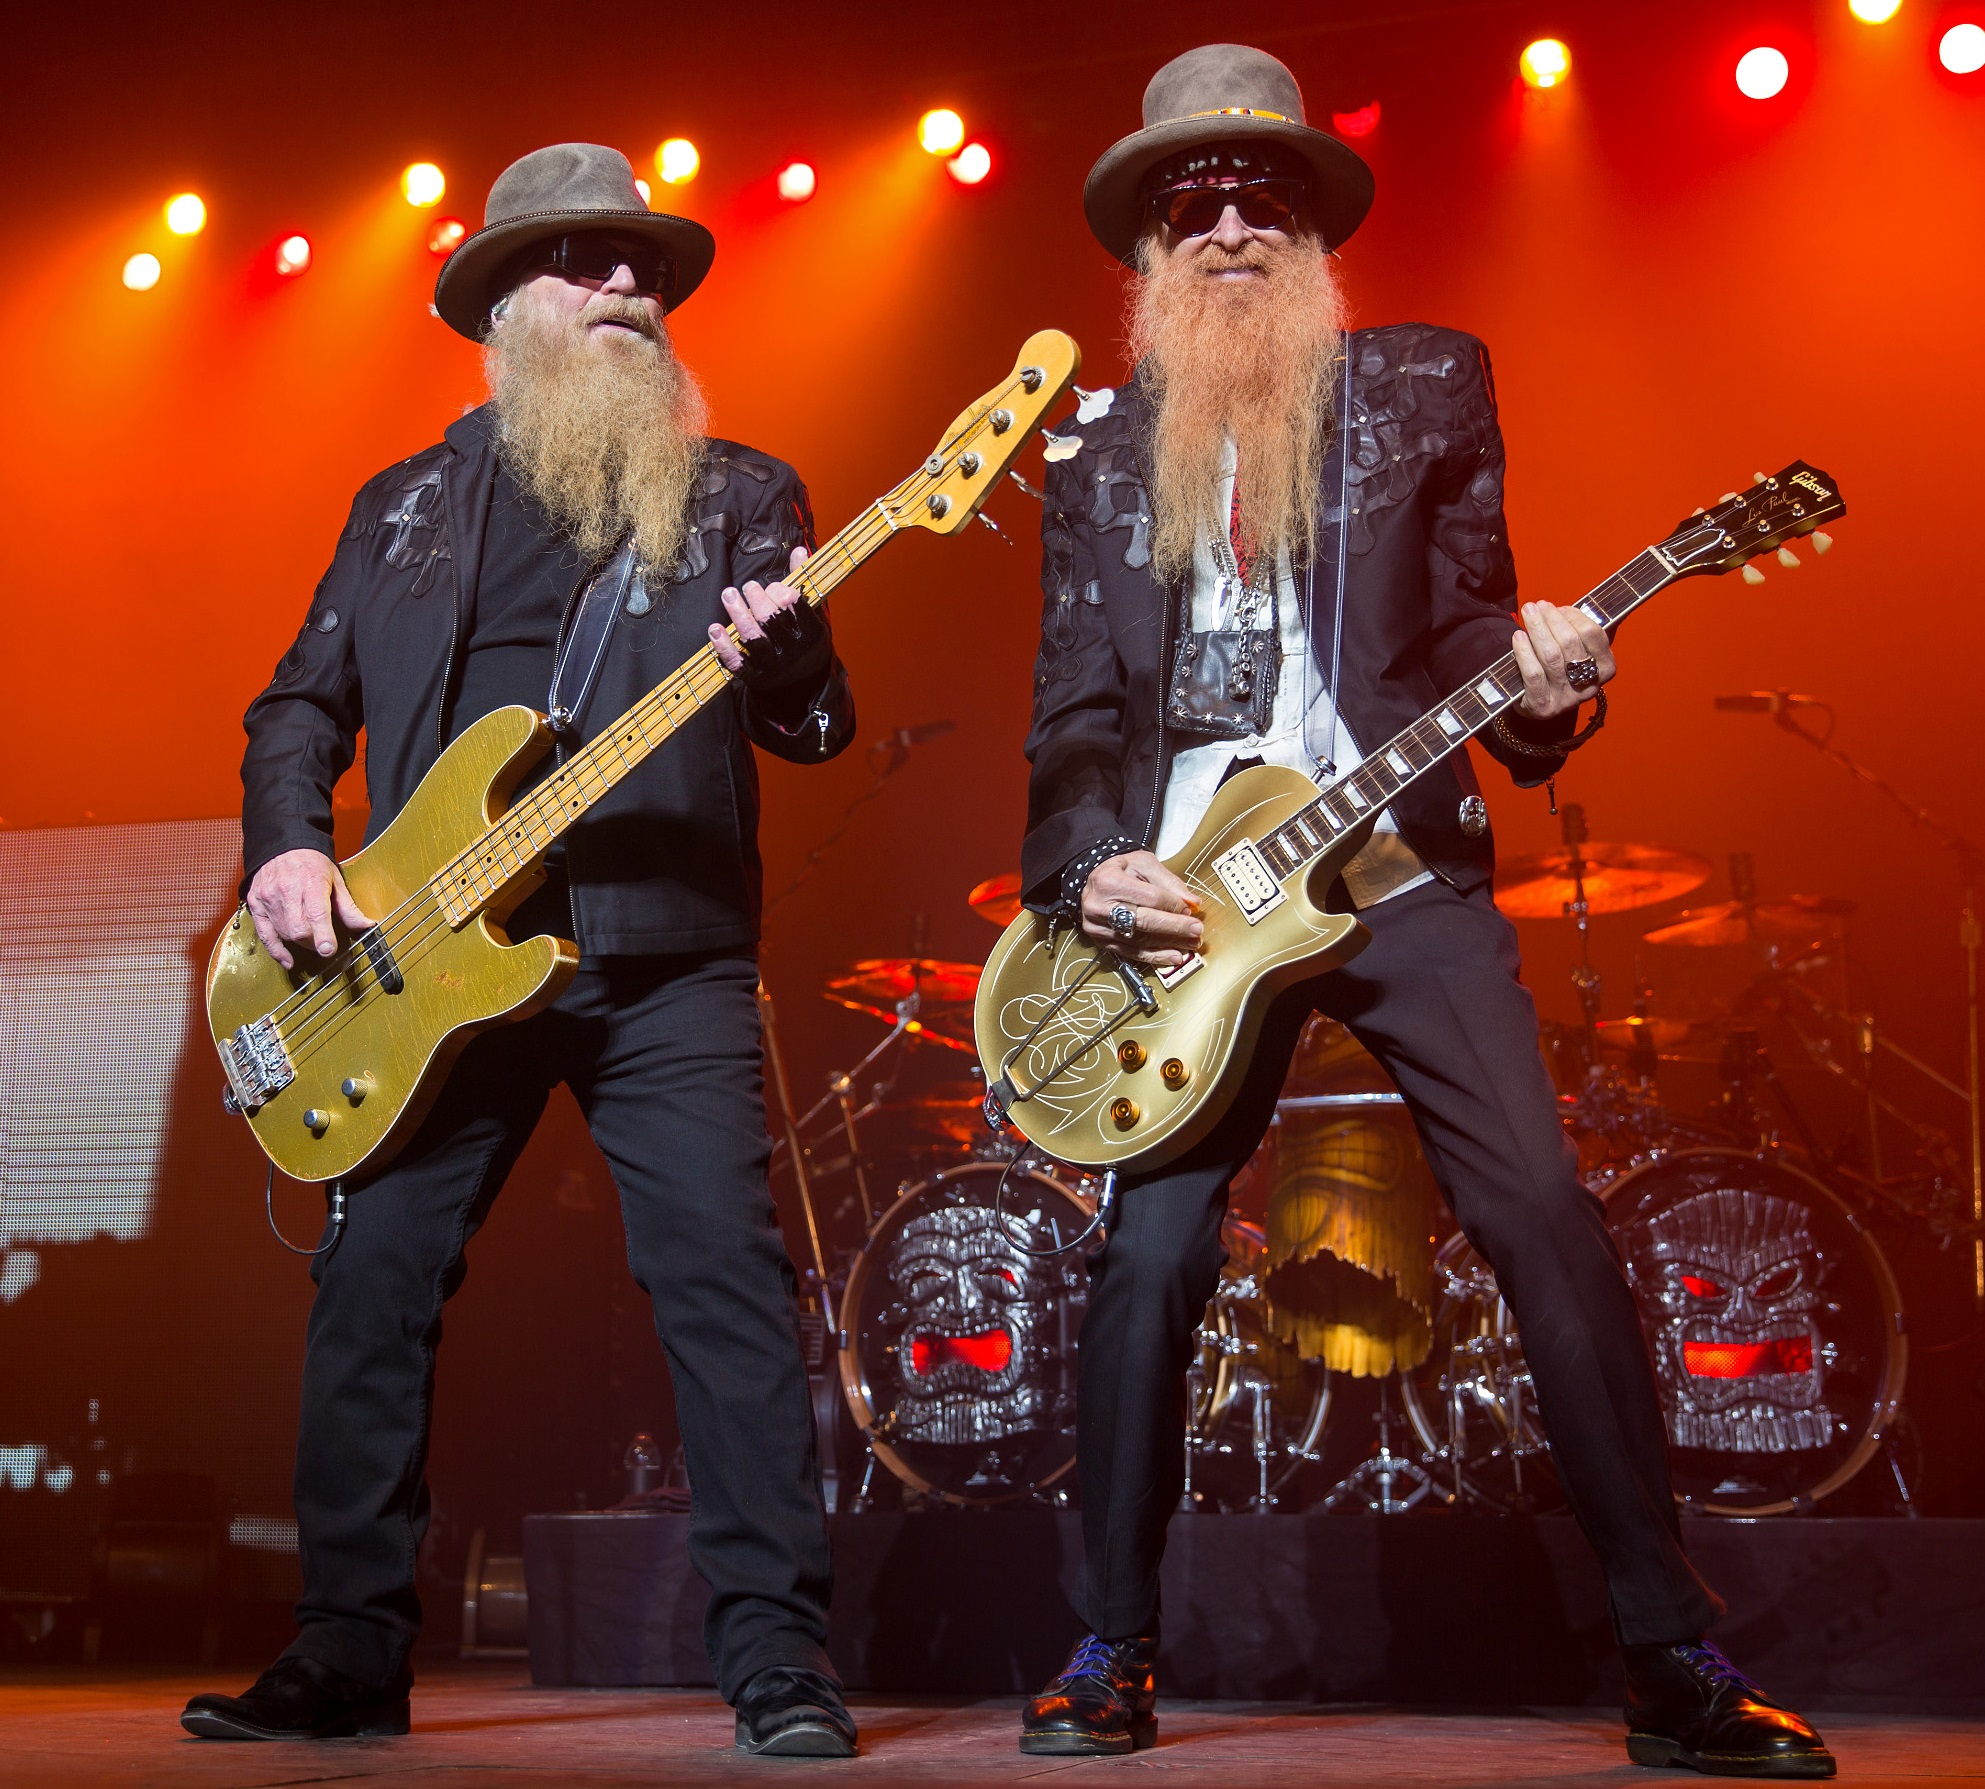 https://upload.wikimedia.org/wikipedia/commons/4/4f/ZZ_Top_2015.jpg